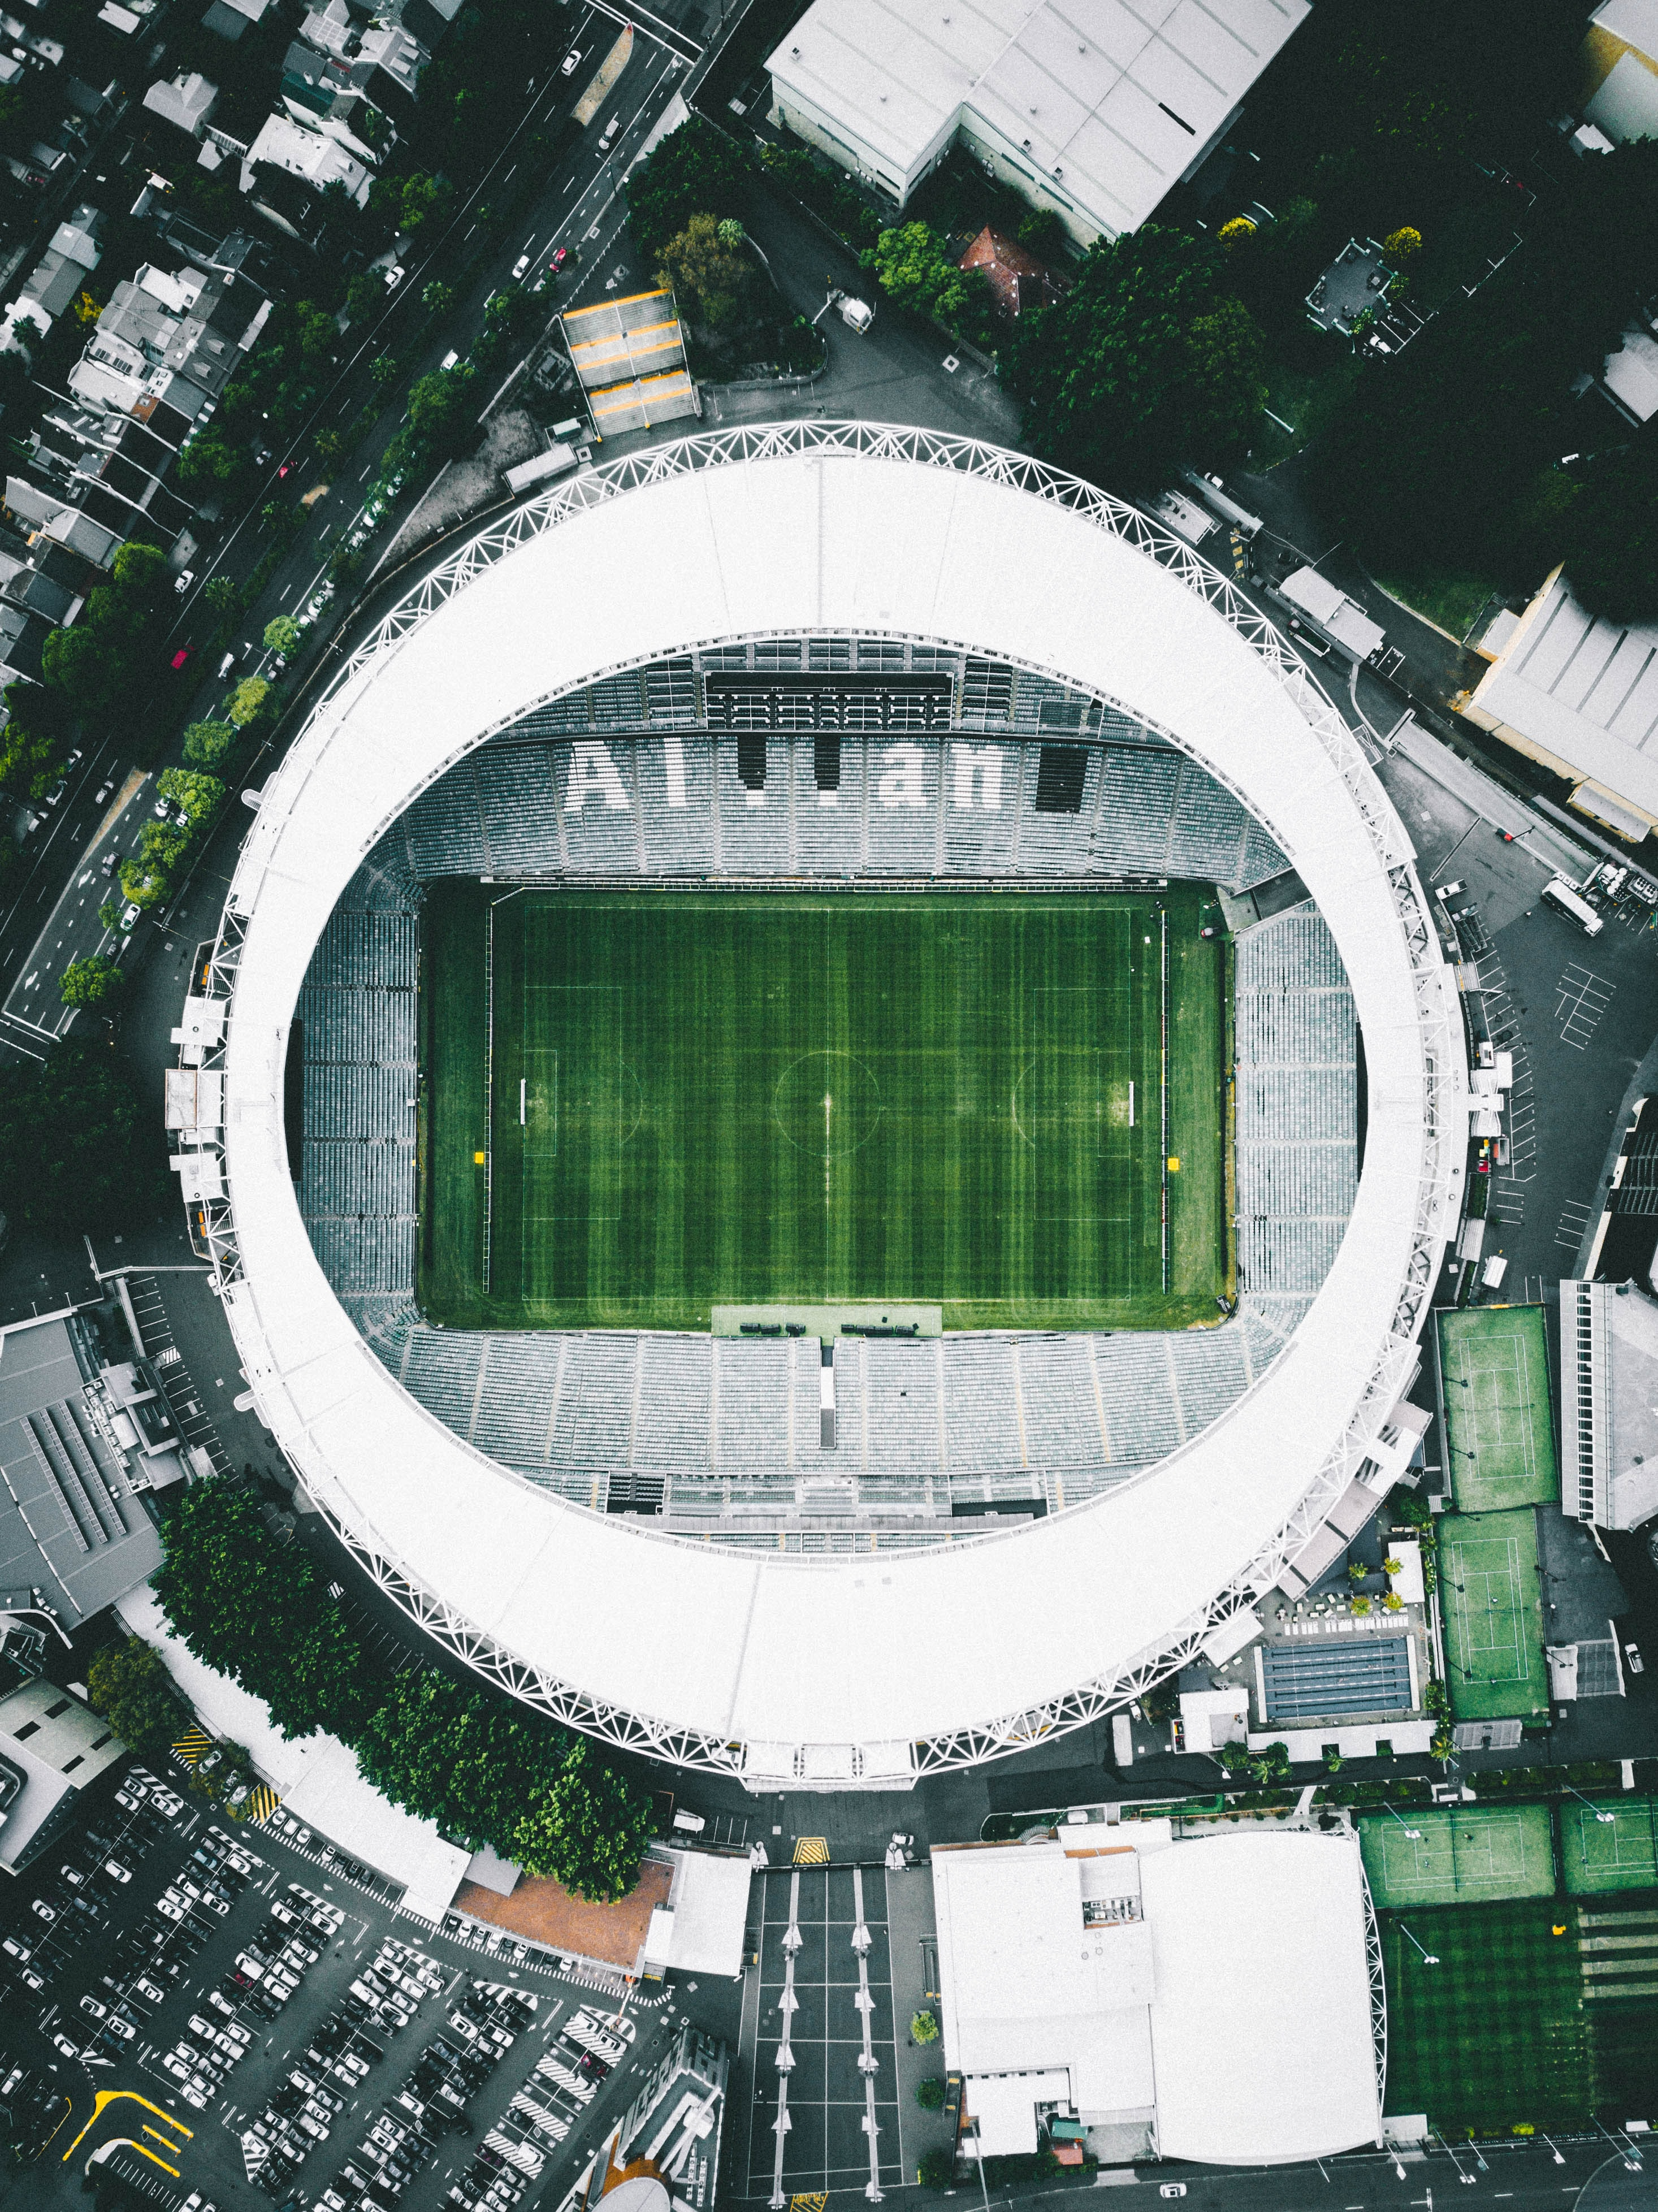 aerial view of green stadium